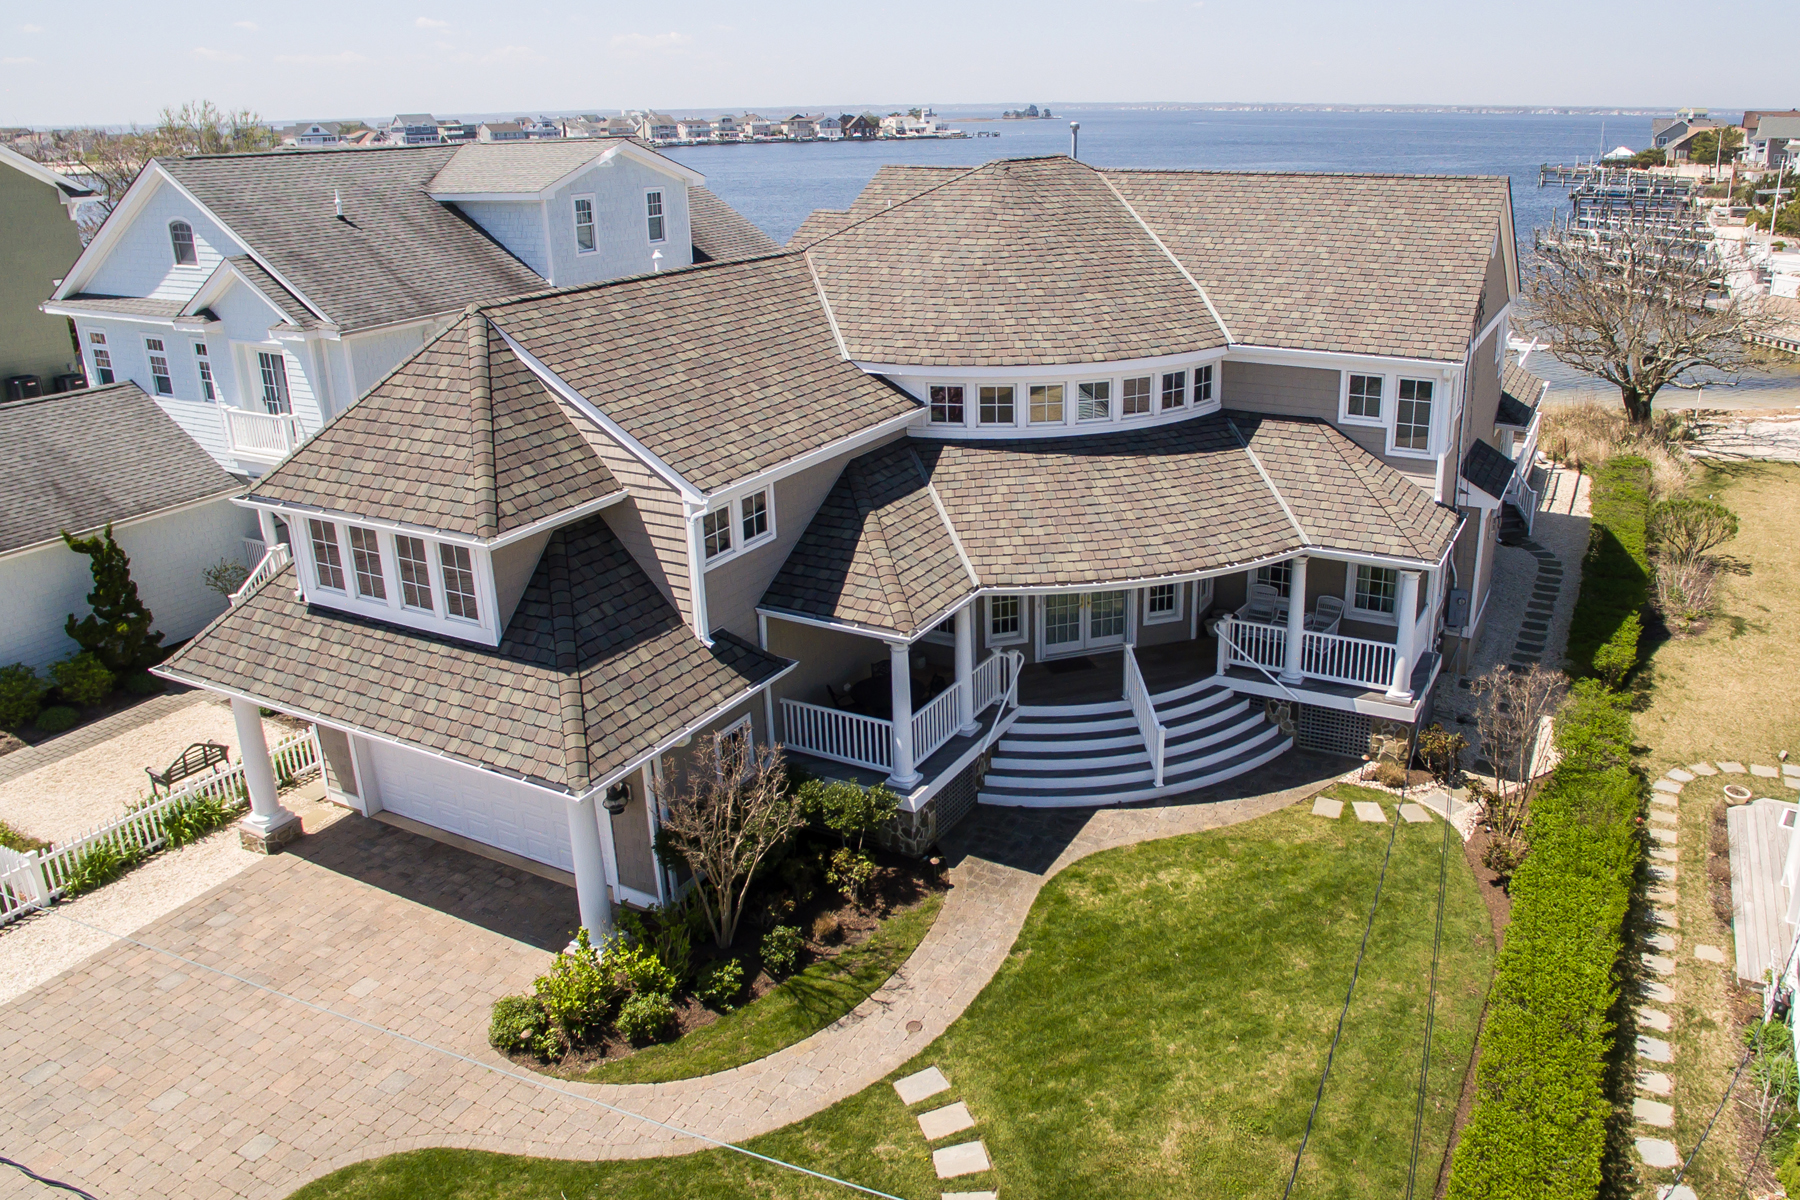 Single Family Home for Sale at Spectacular Custom Home With Open Bay Views 3651 Bayside Court Normandy Beach, 08739 United States